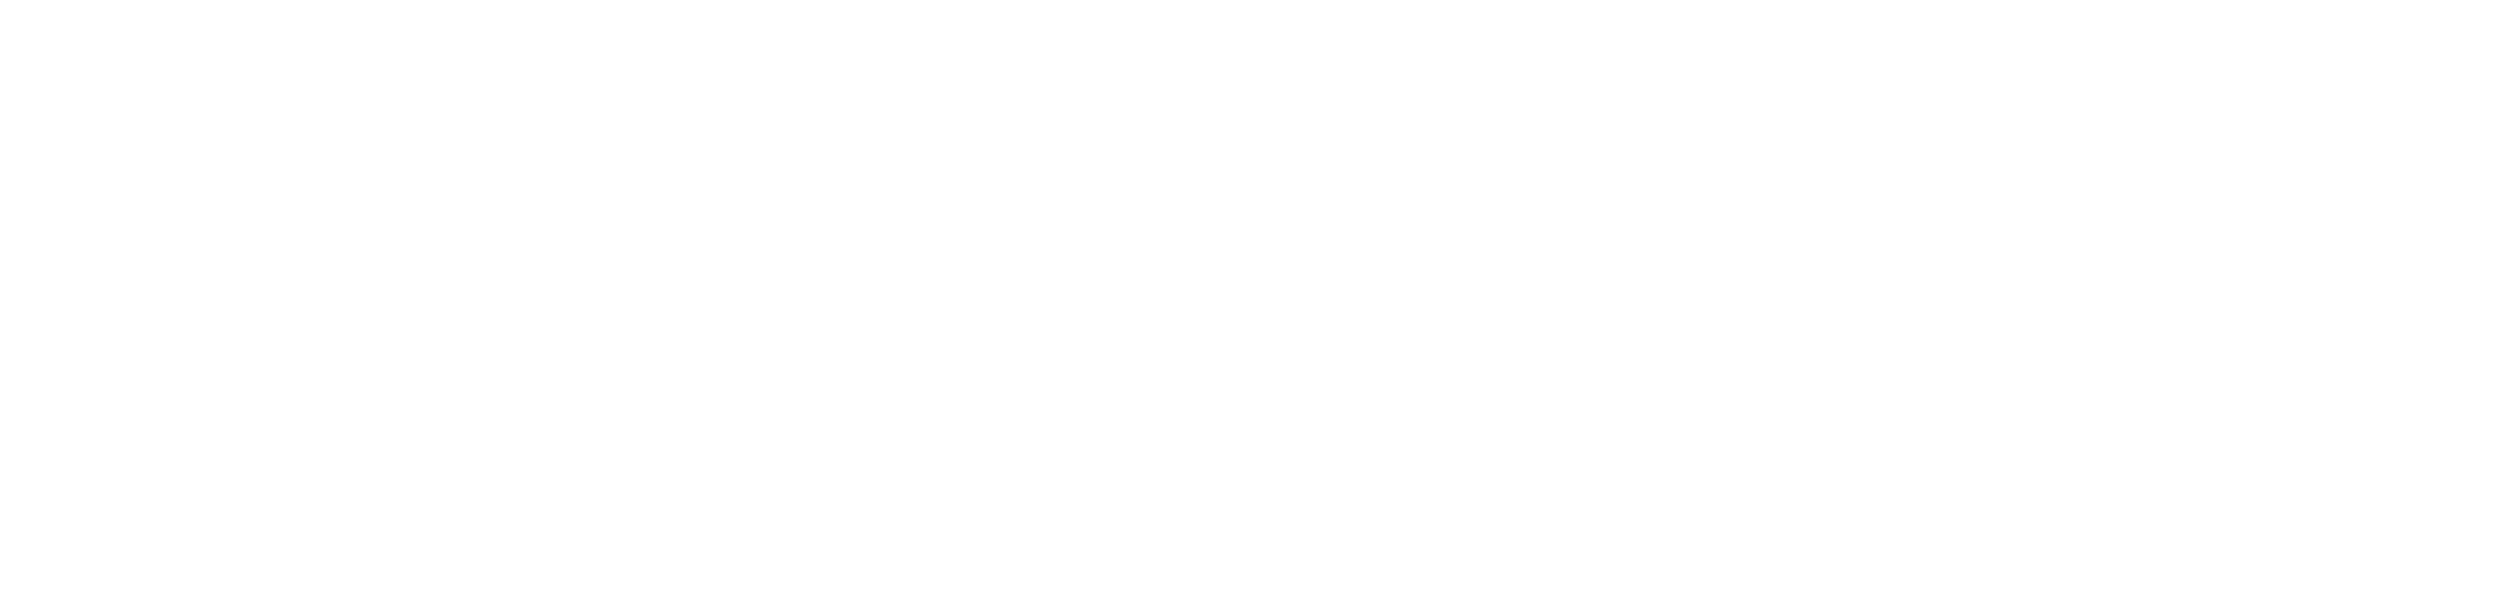 London Financial Consultants